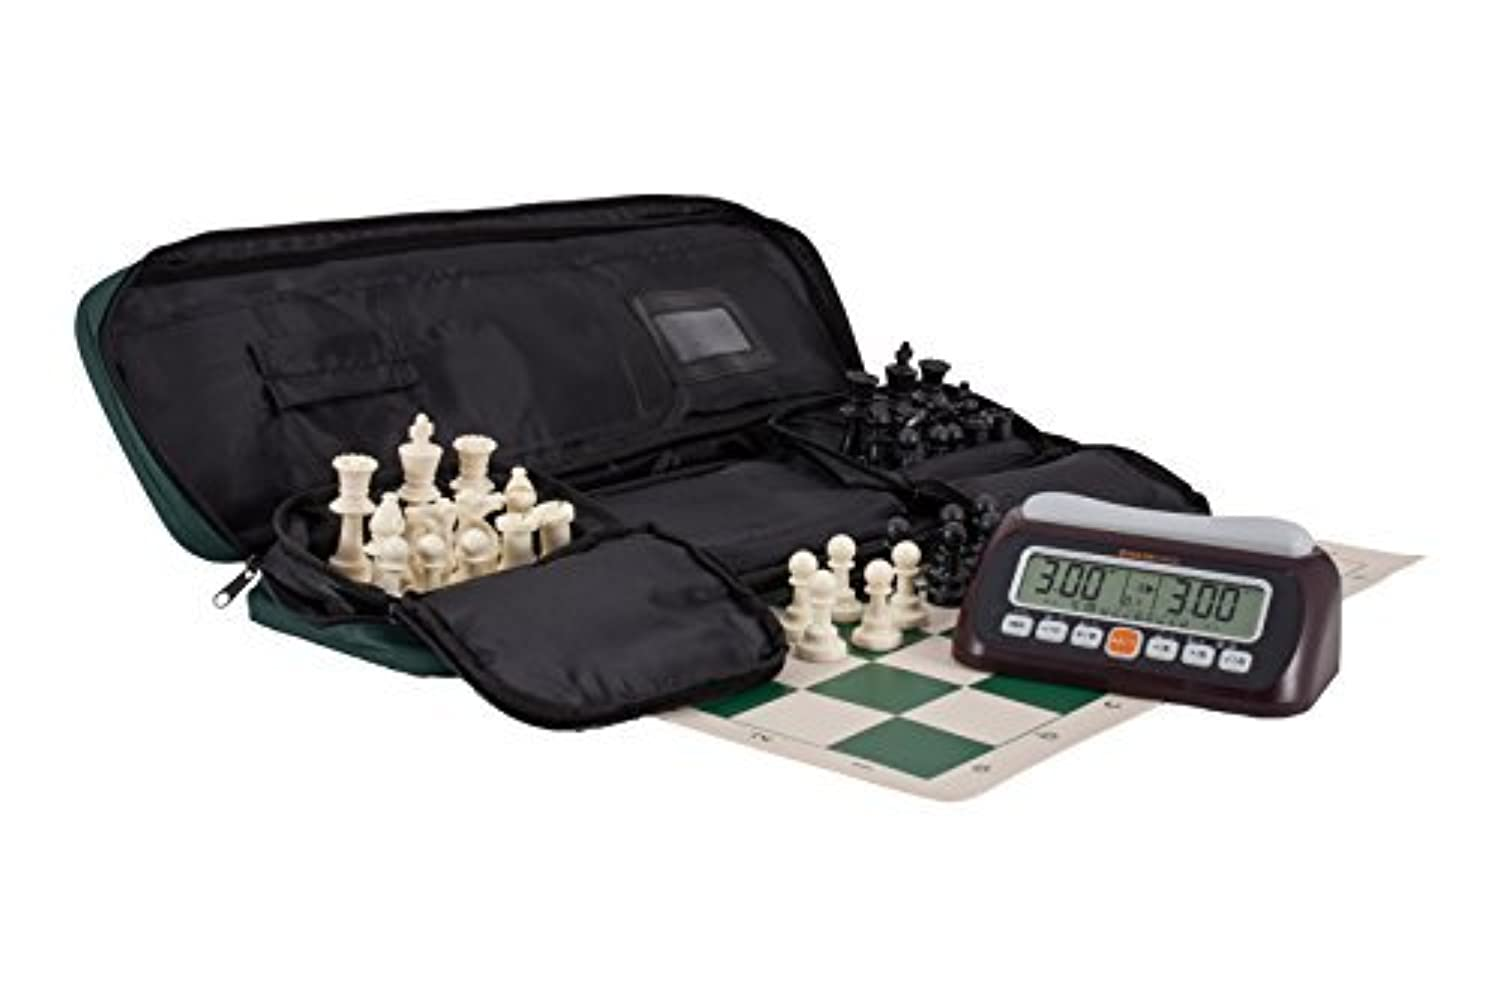 Deluxe Omcor Game Timer 960 Chess Set Combination by